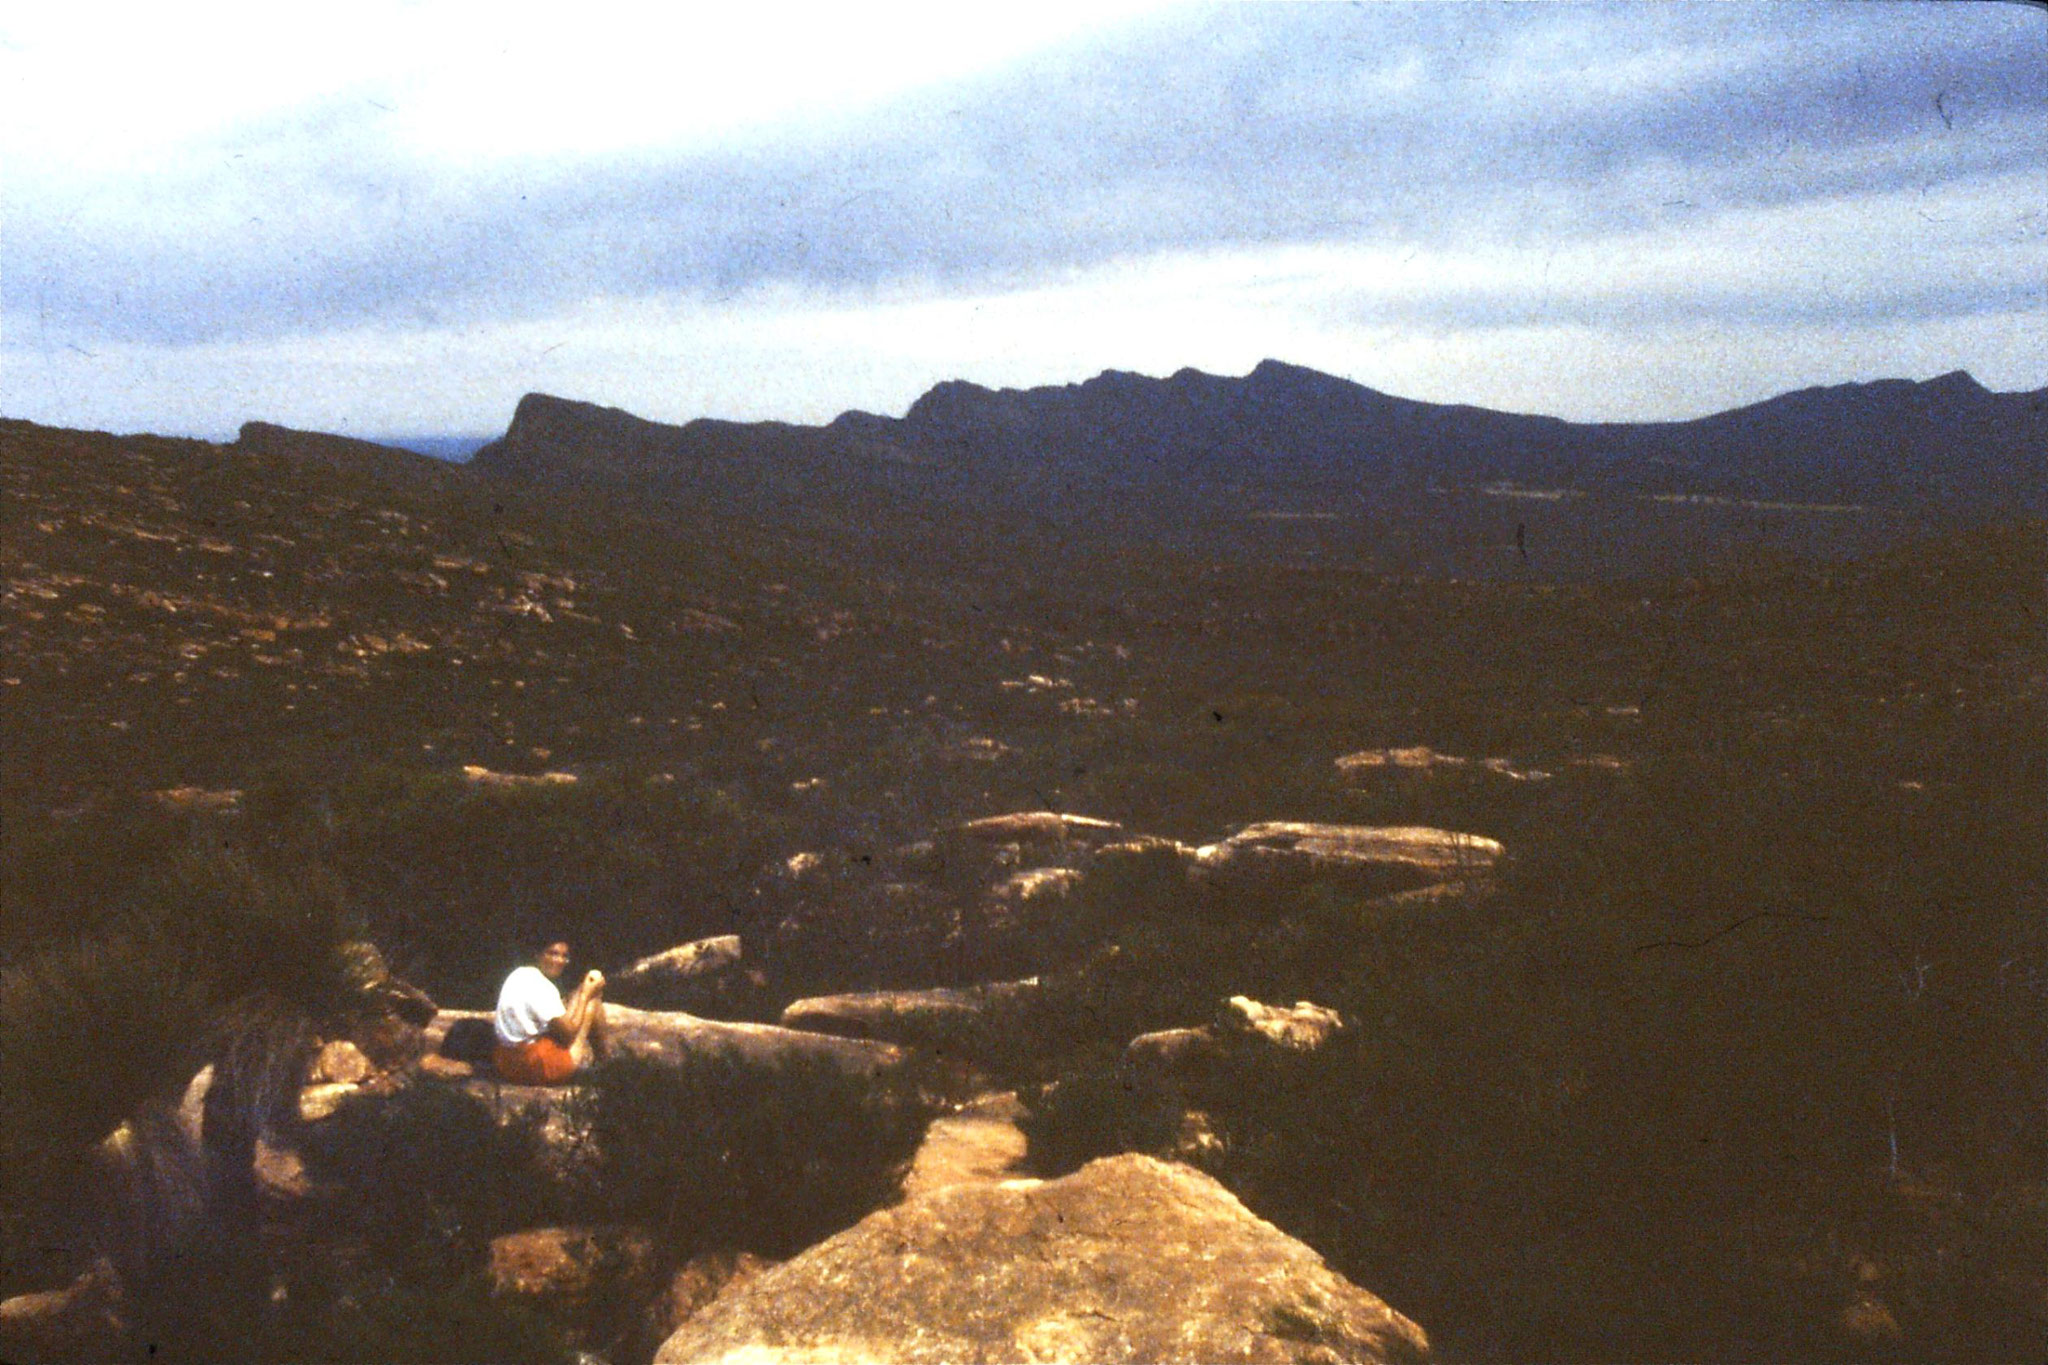 6/11/1990: 29: Flinders Ranges National Park, Wilpena Pound